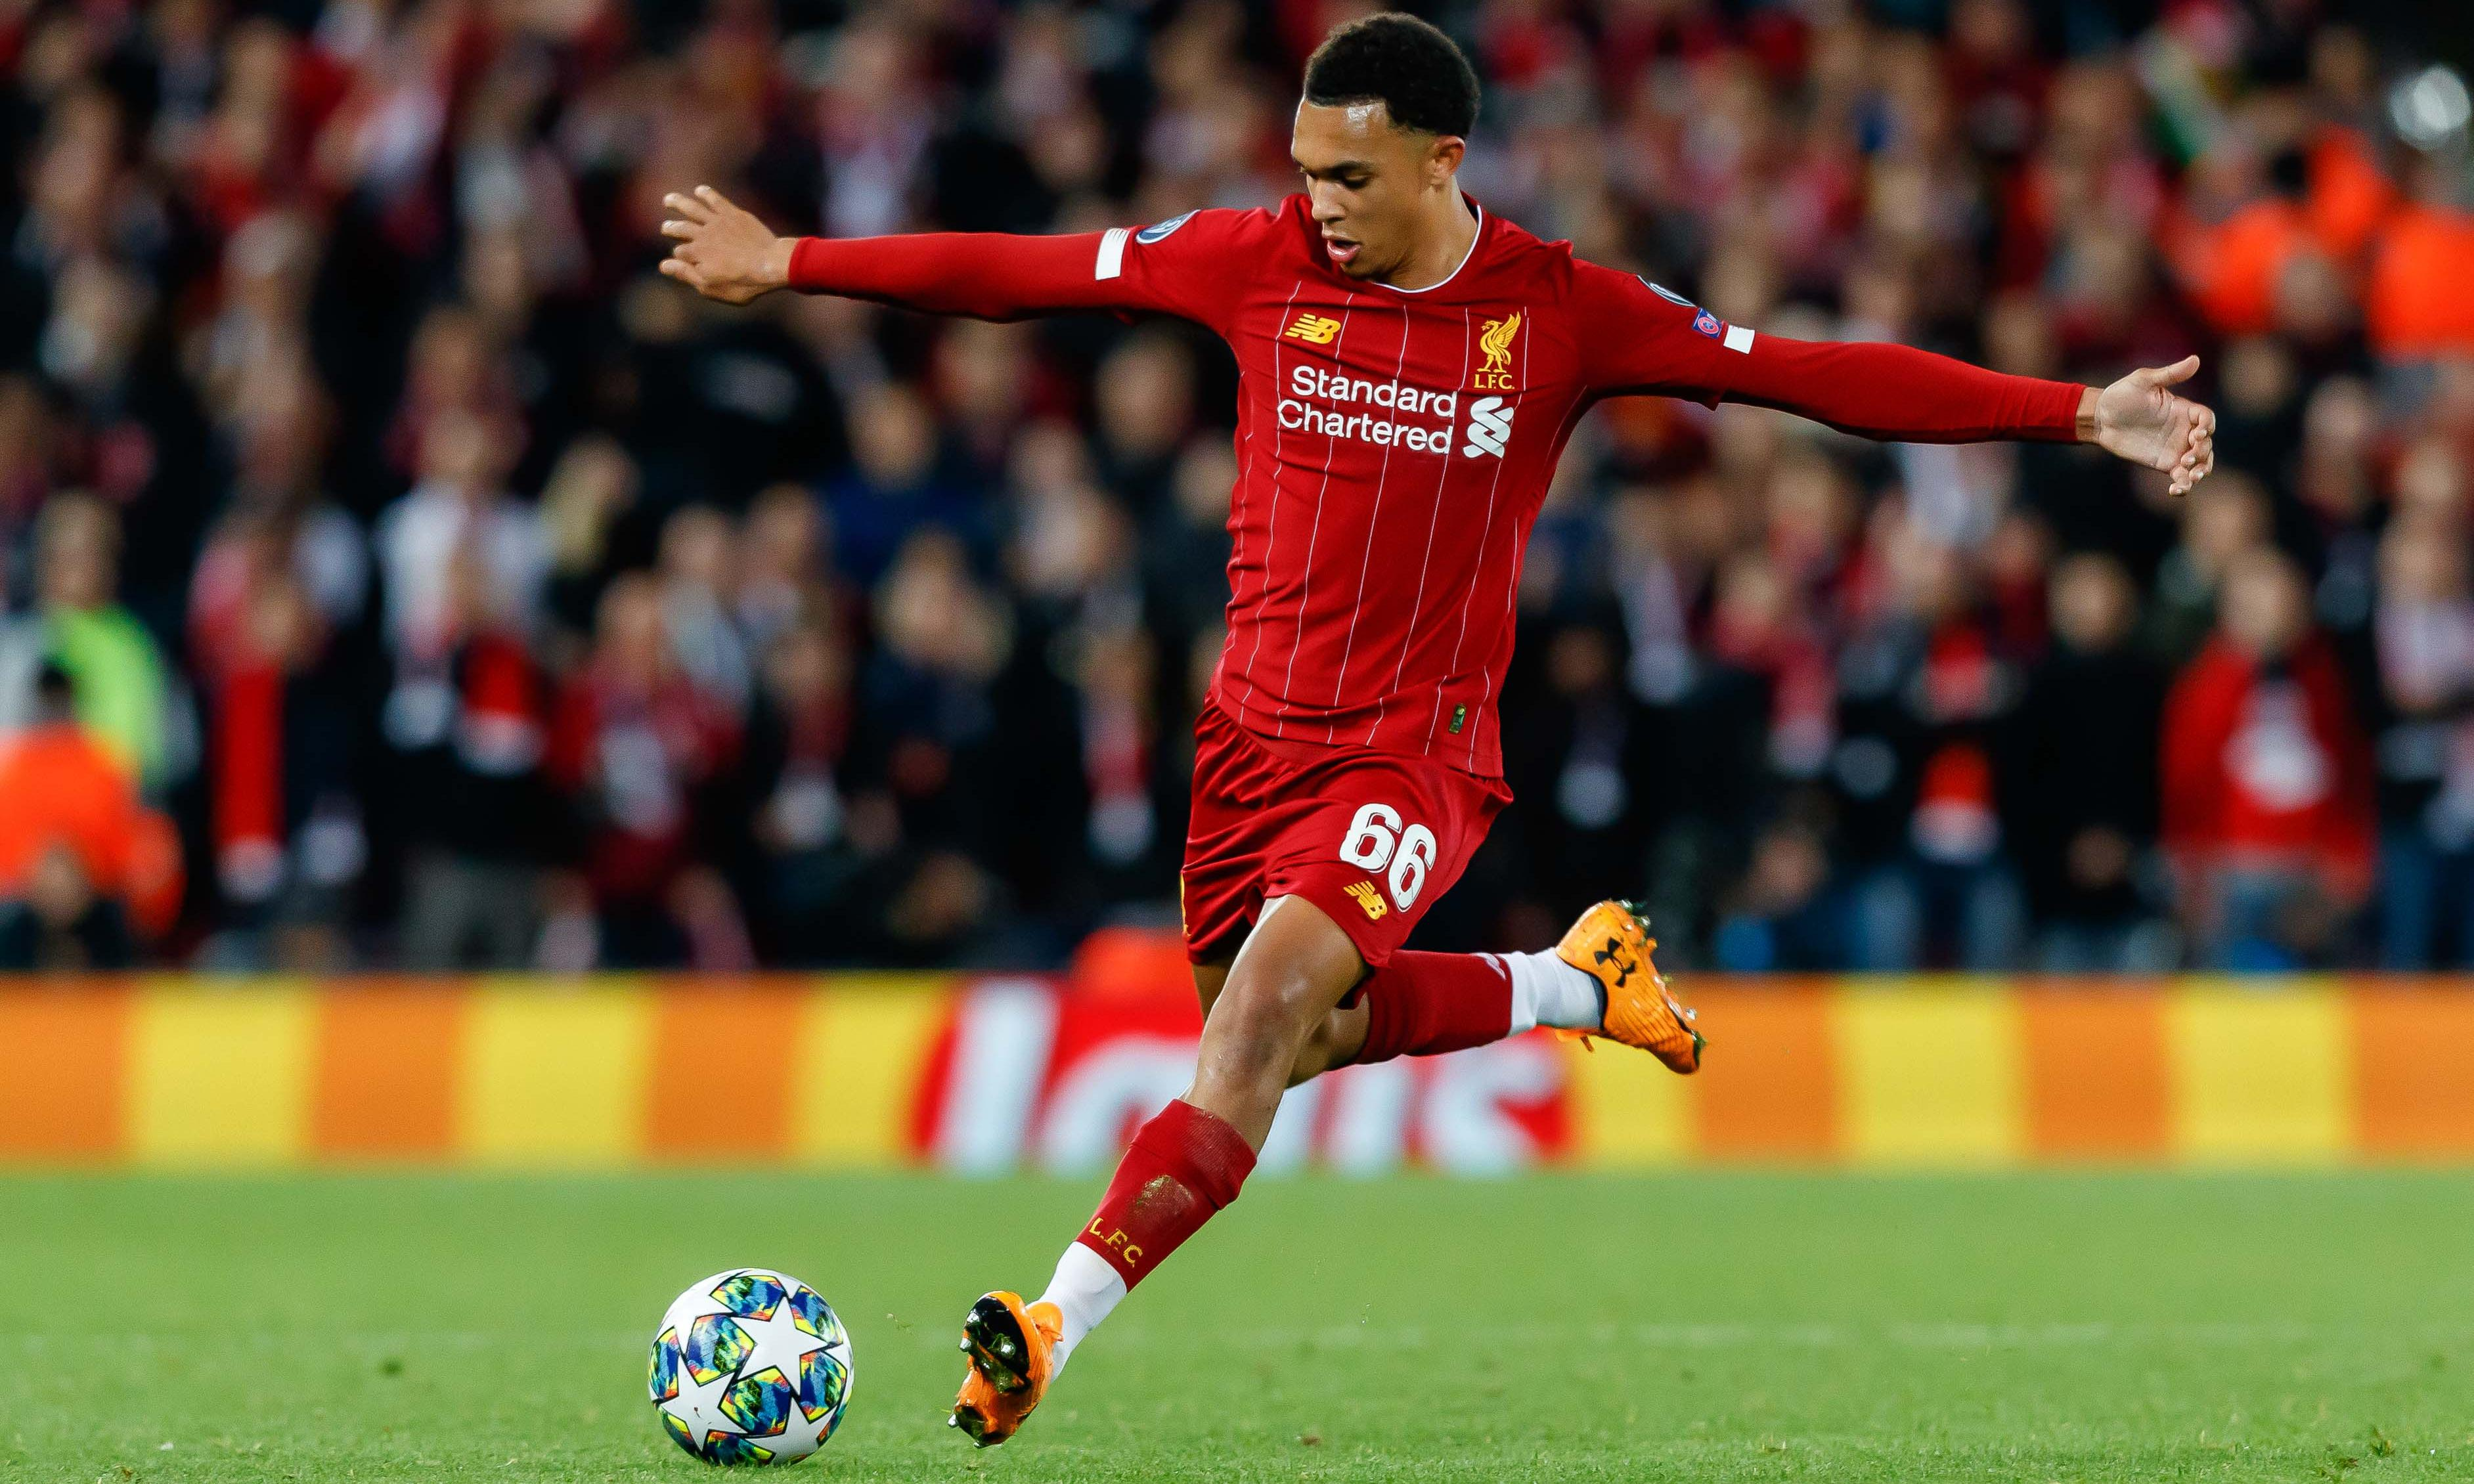 Could Trent Alexander-Arnold end up playing in midfield for Liverpool?